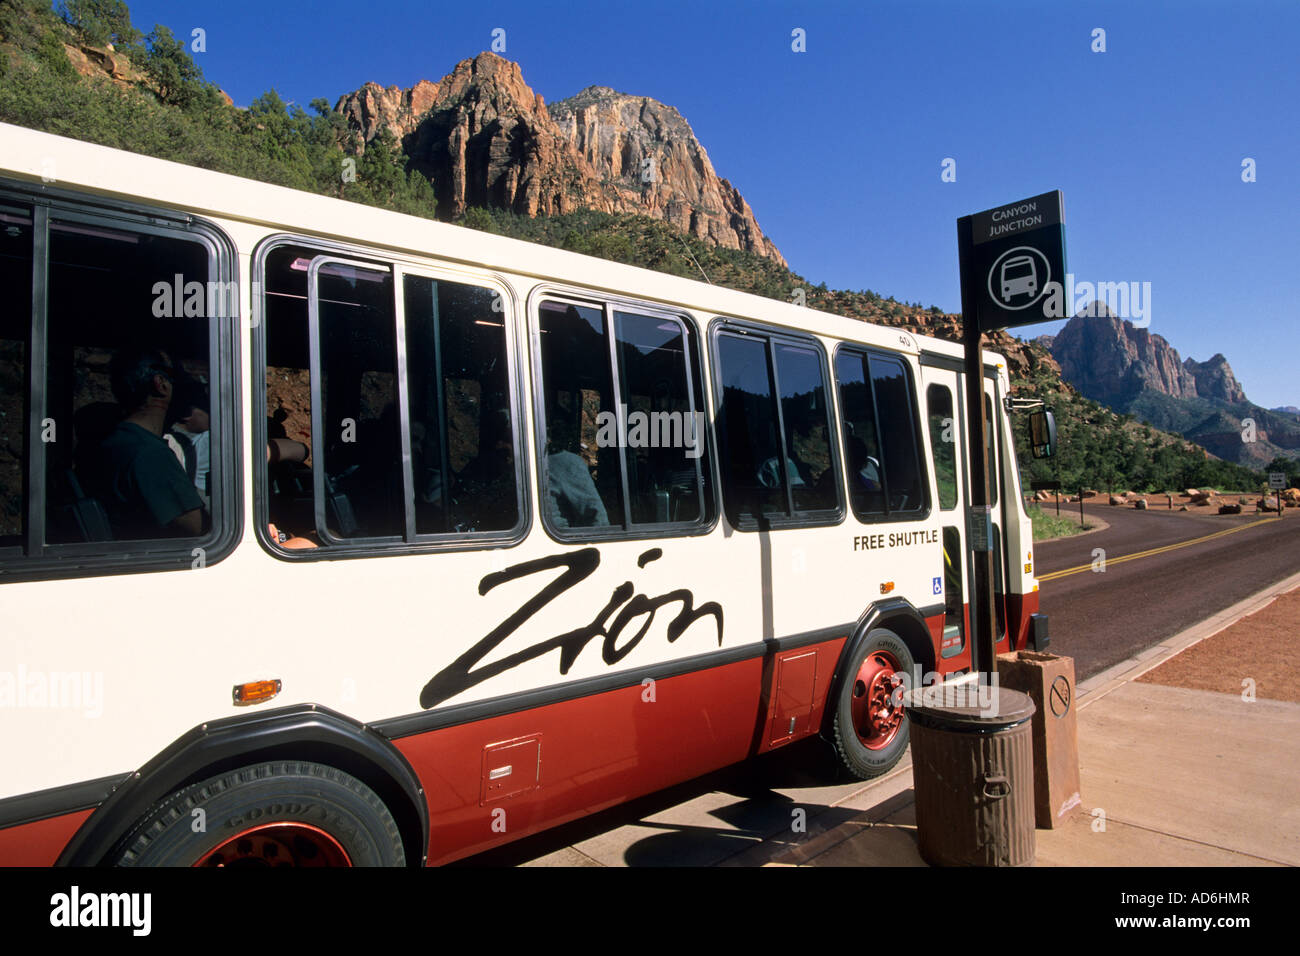 free tourist shuttle bus in zion canyon zion national park utah